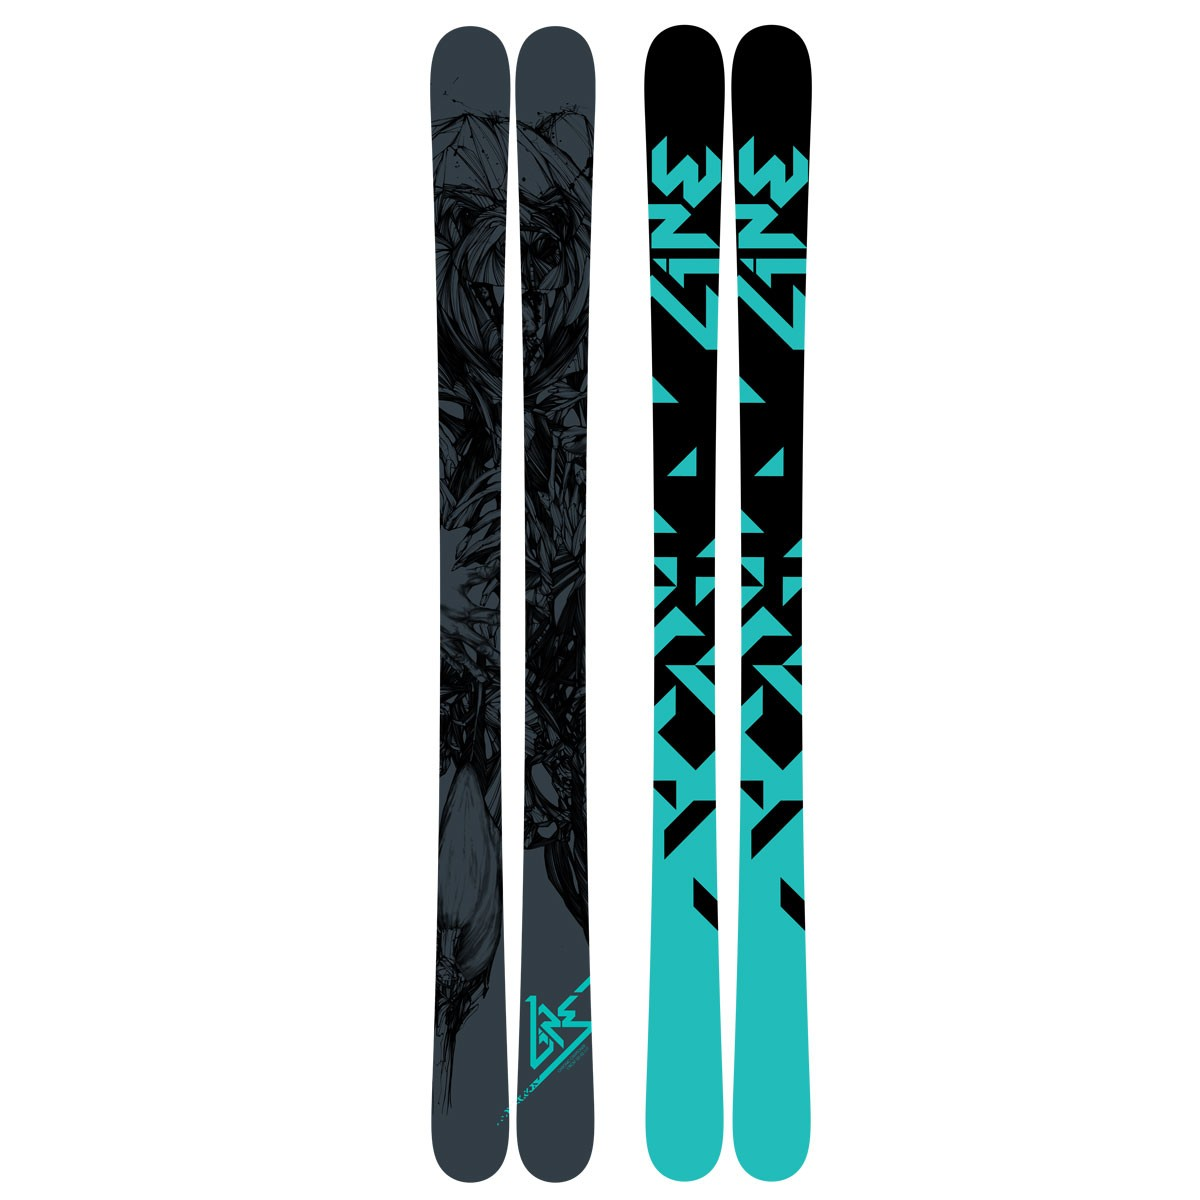 Newschooler: Good Freestyle Skiing Skis